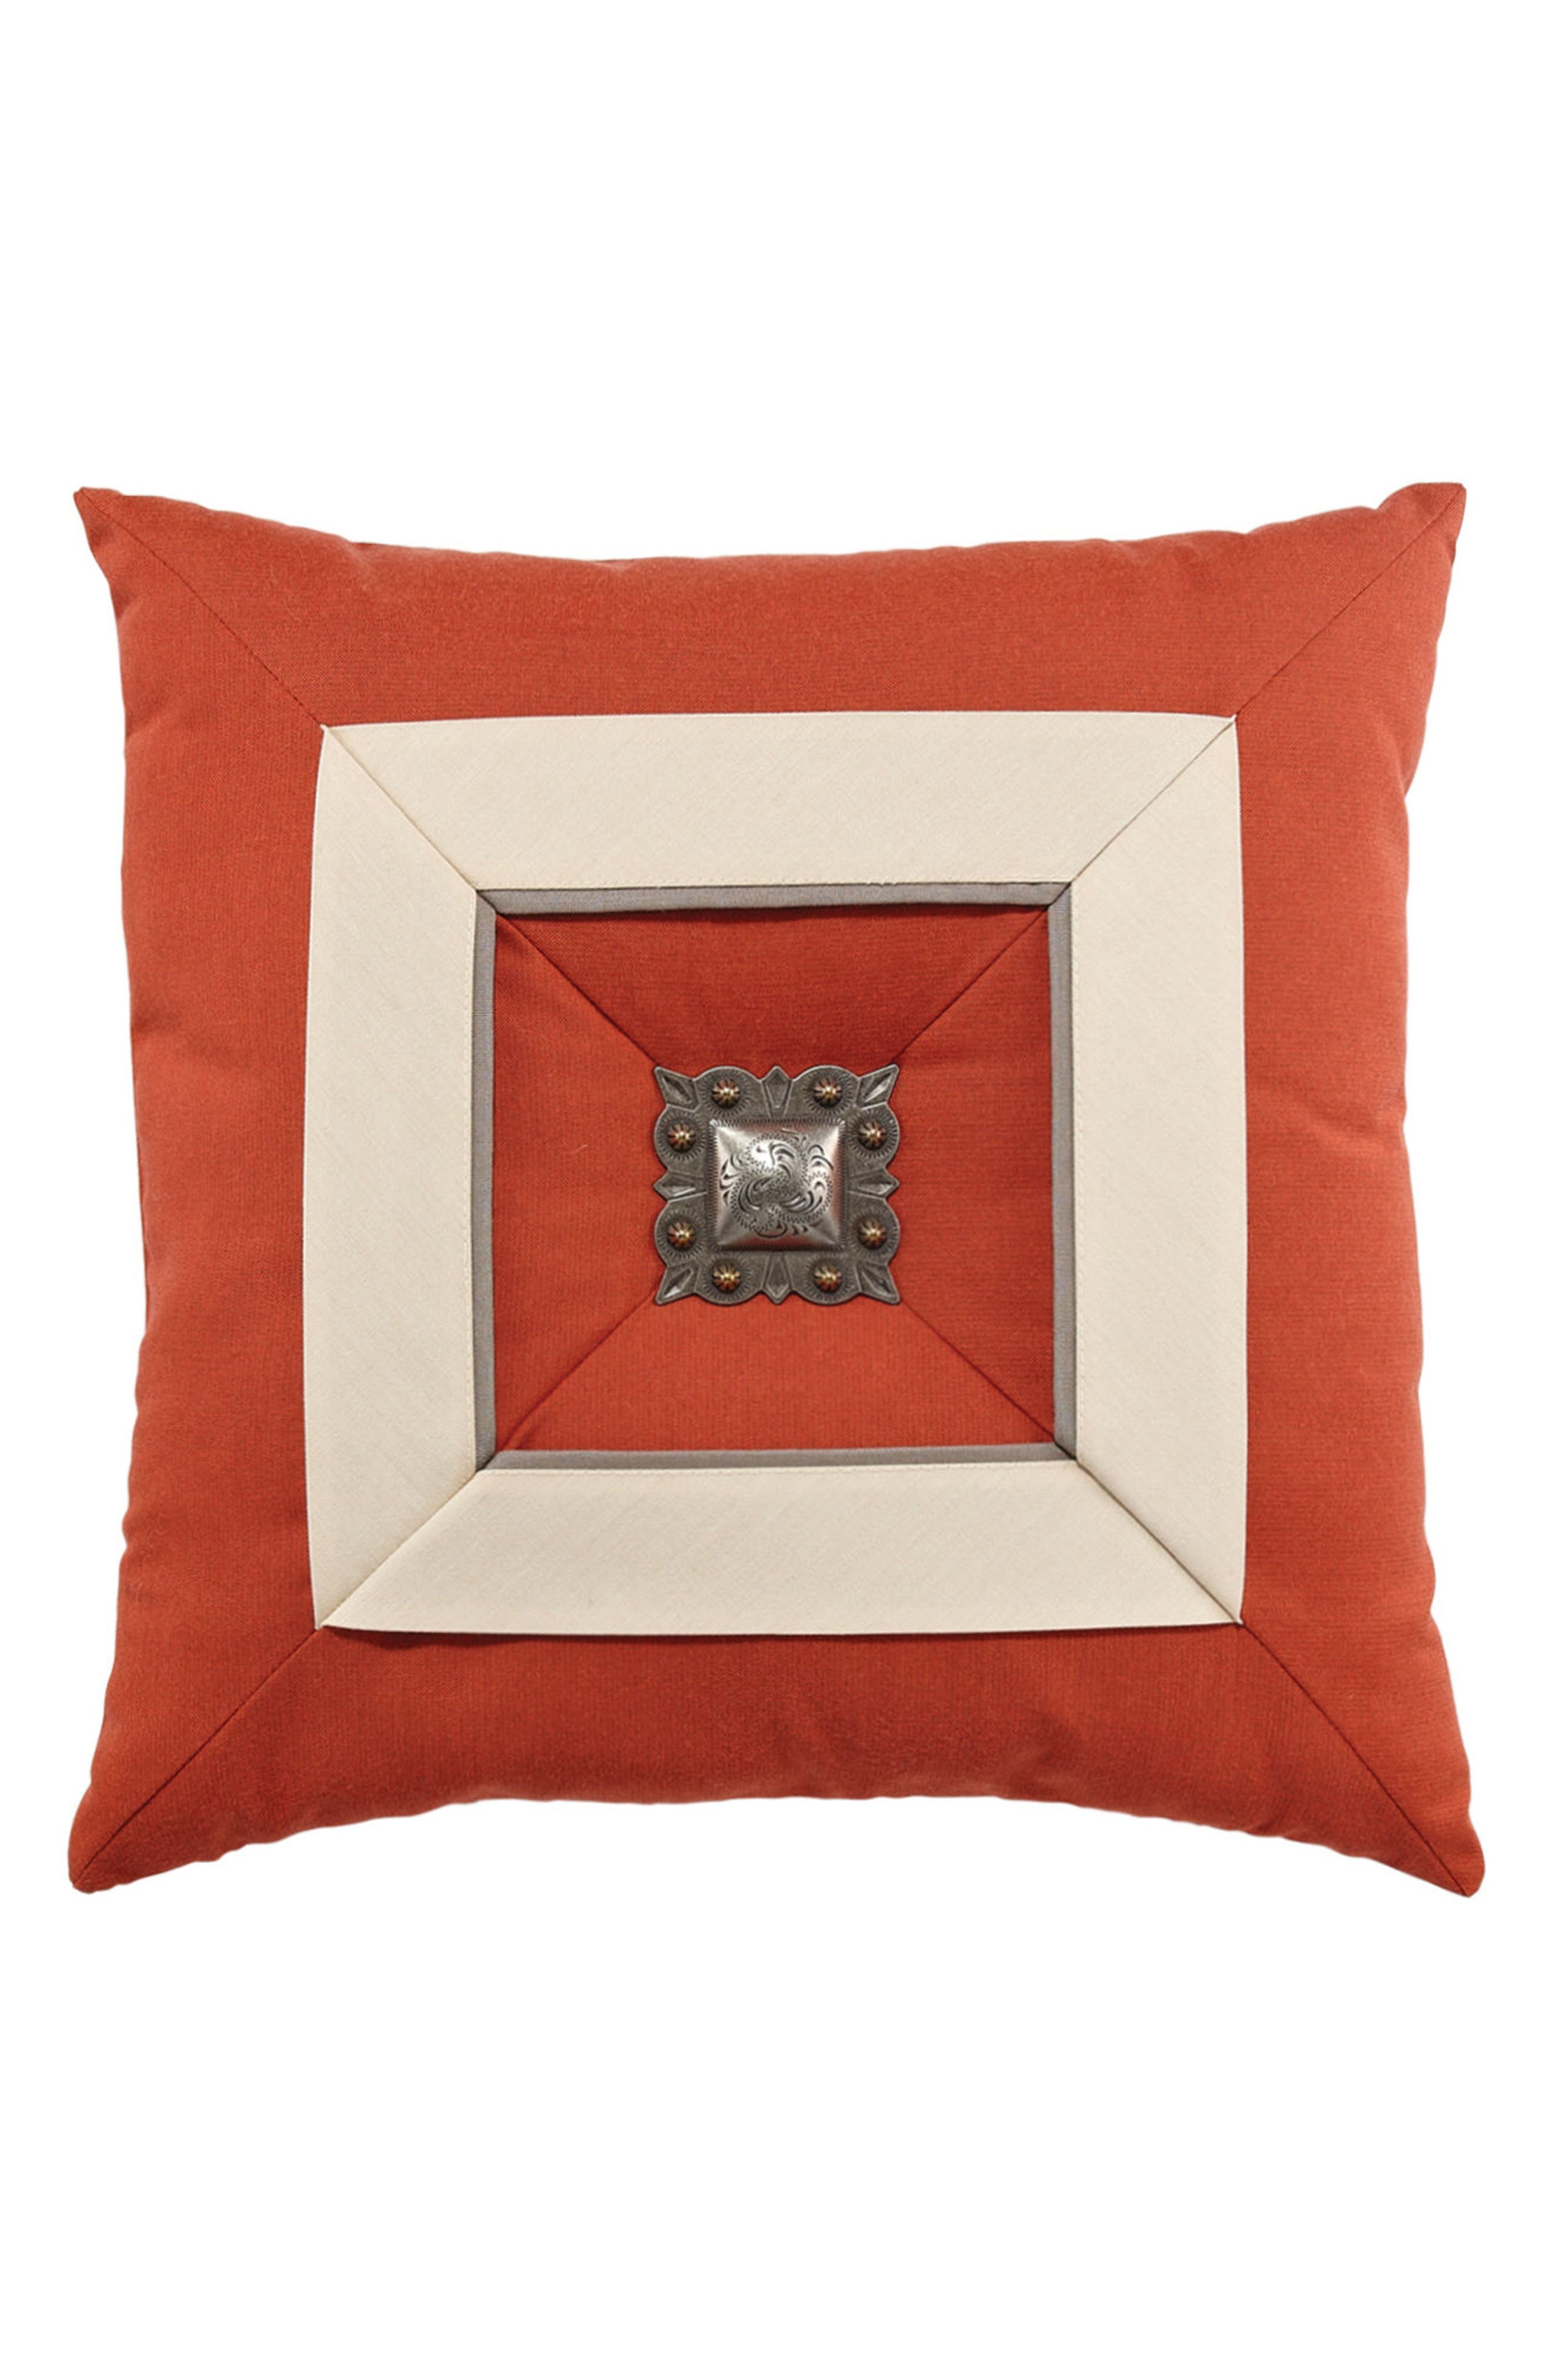 Coral Cruise Indoor/Outdoor Accent Pillow,                             Main thumbnail 1, color,                             801